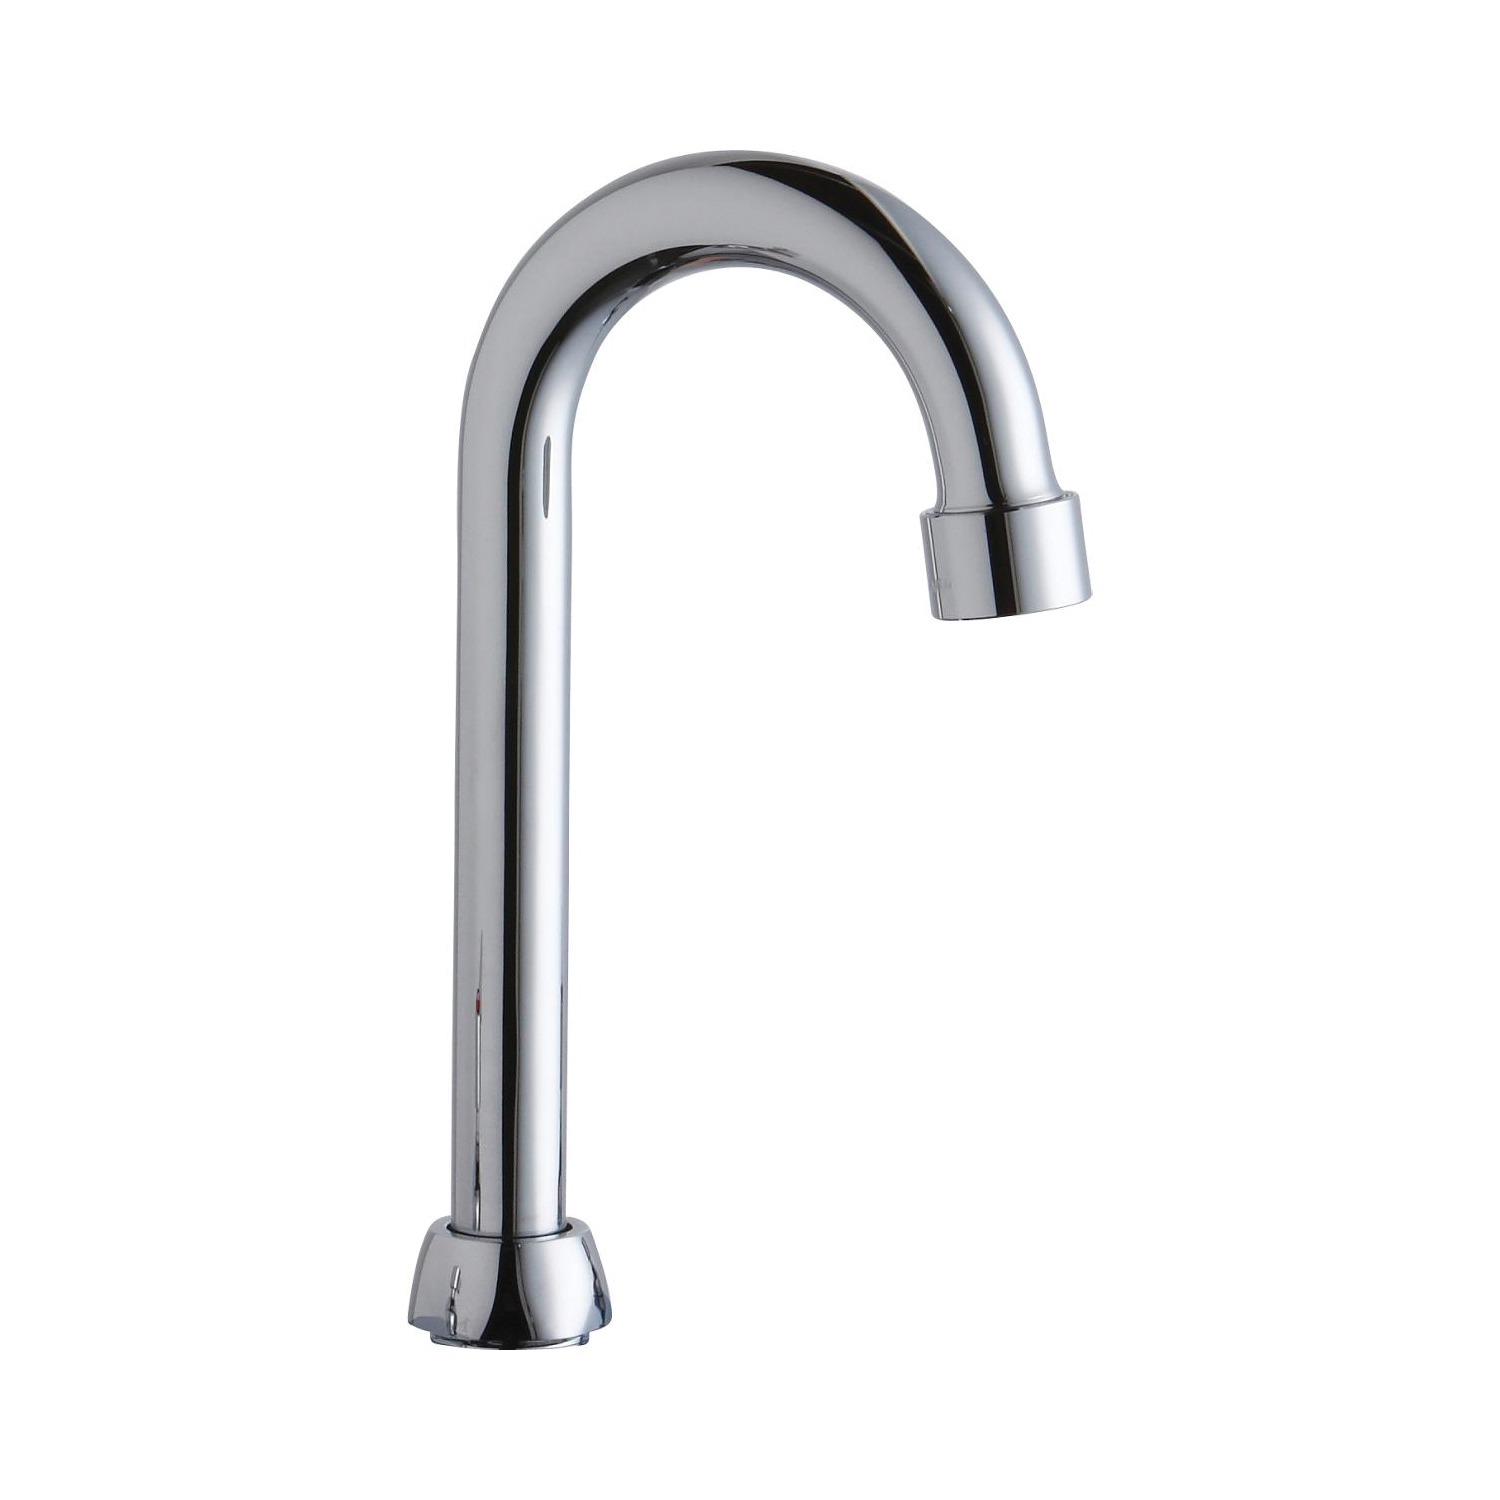 Elkay A55397 Replacement Gooseneck Spout For Use With Model Lk543af08c Lk543af10c Small Nut Concealed Deck Commercial Faucet 3 1 2 In Spout Reach Metal Import Residential First Supply